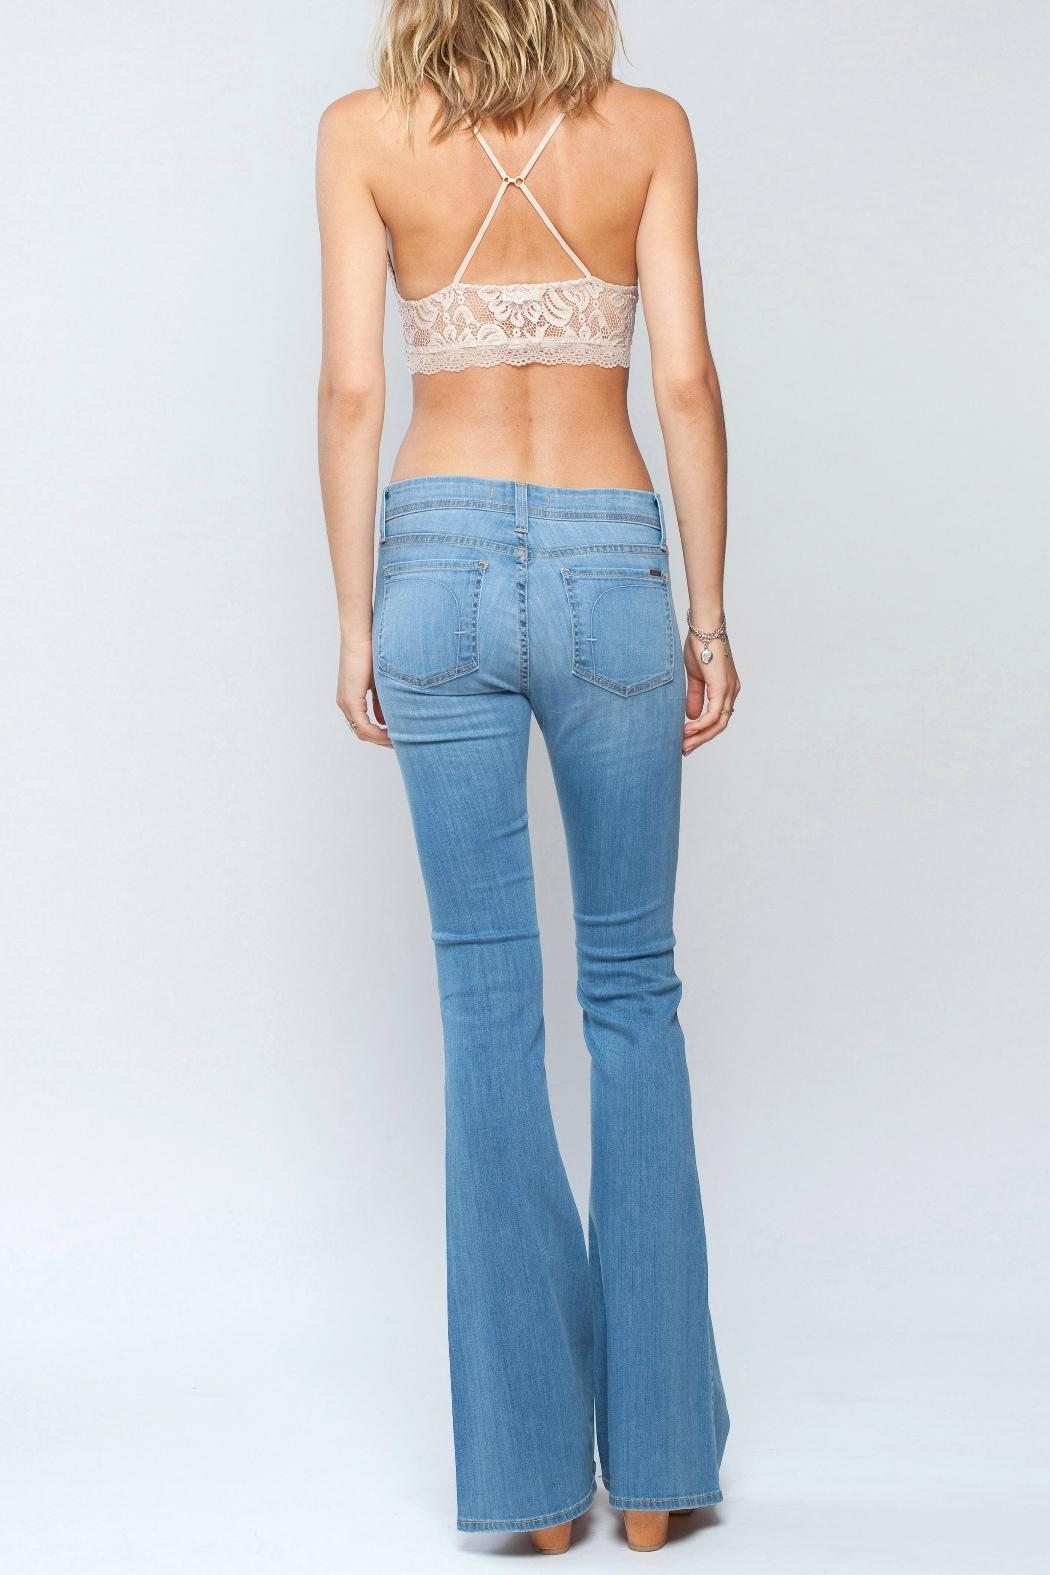 Gentle Fawn Convertible Jewel Bralette - Back Cropped Image